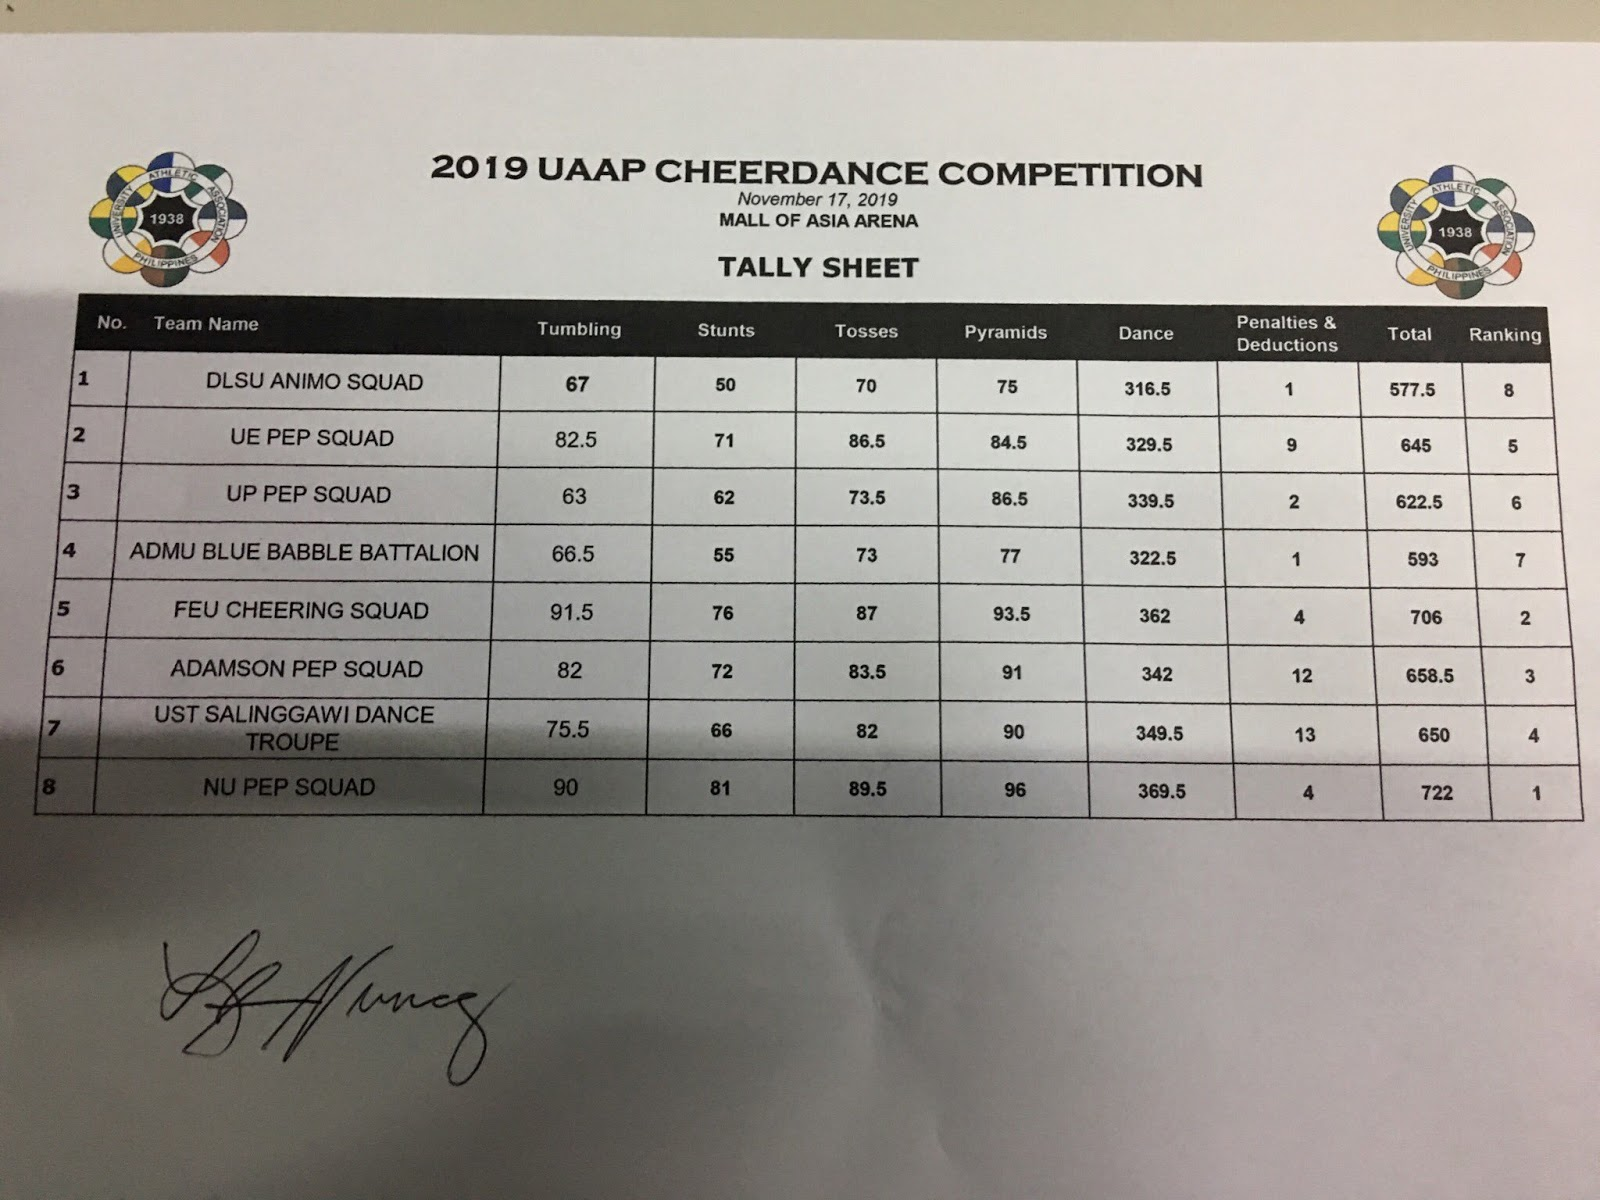 The tally sheet for the 2019 Cheerdance Competition.